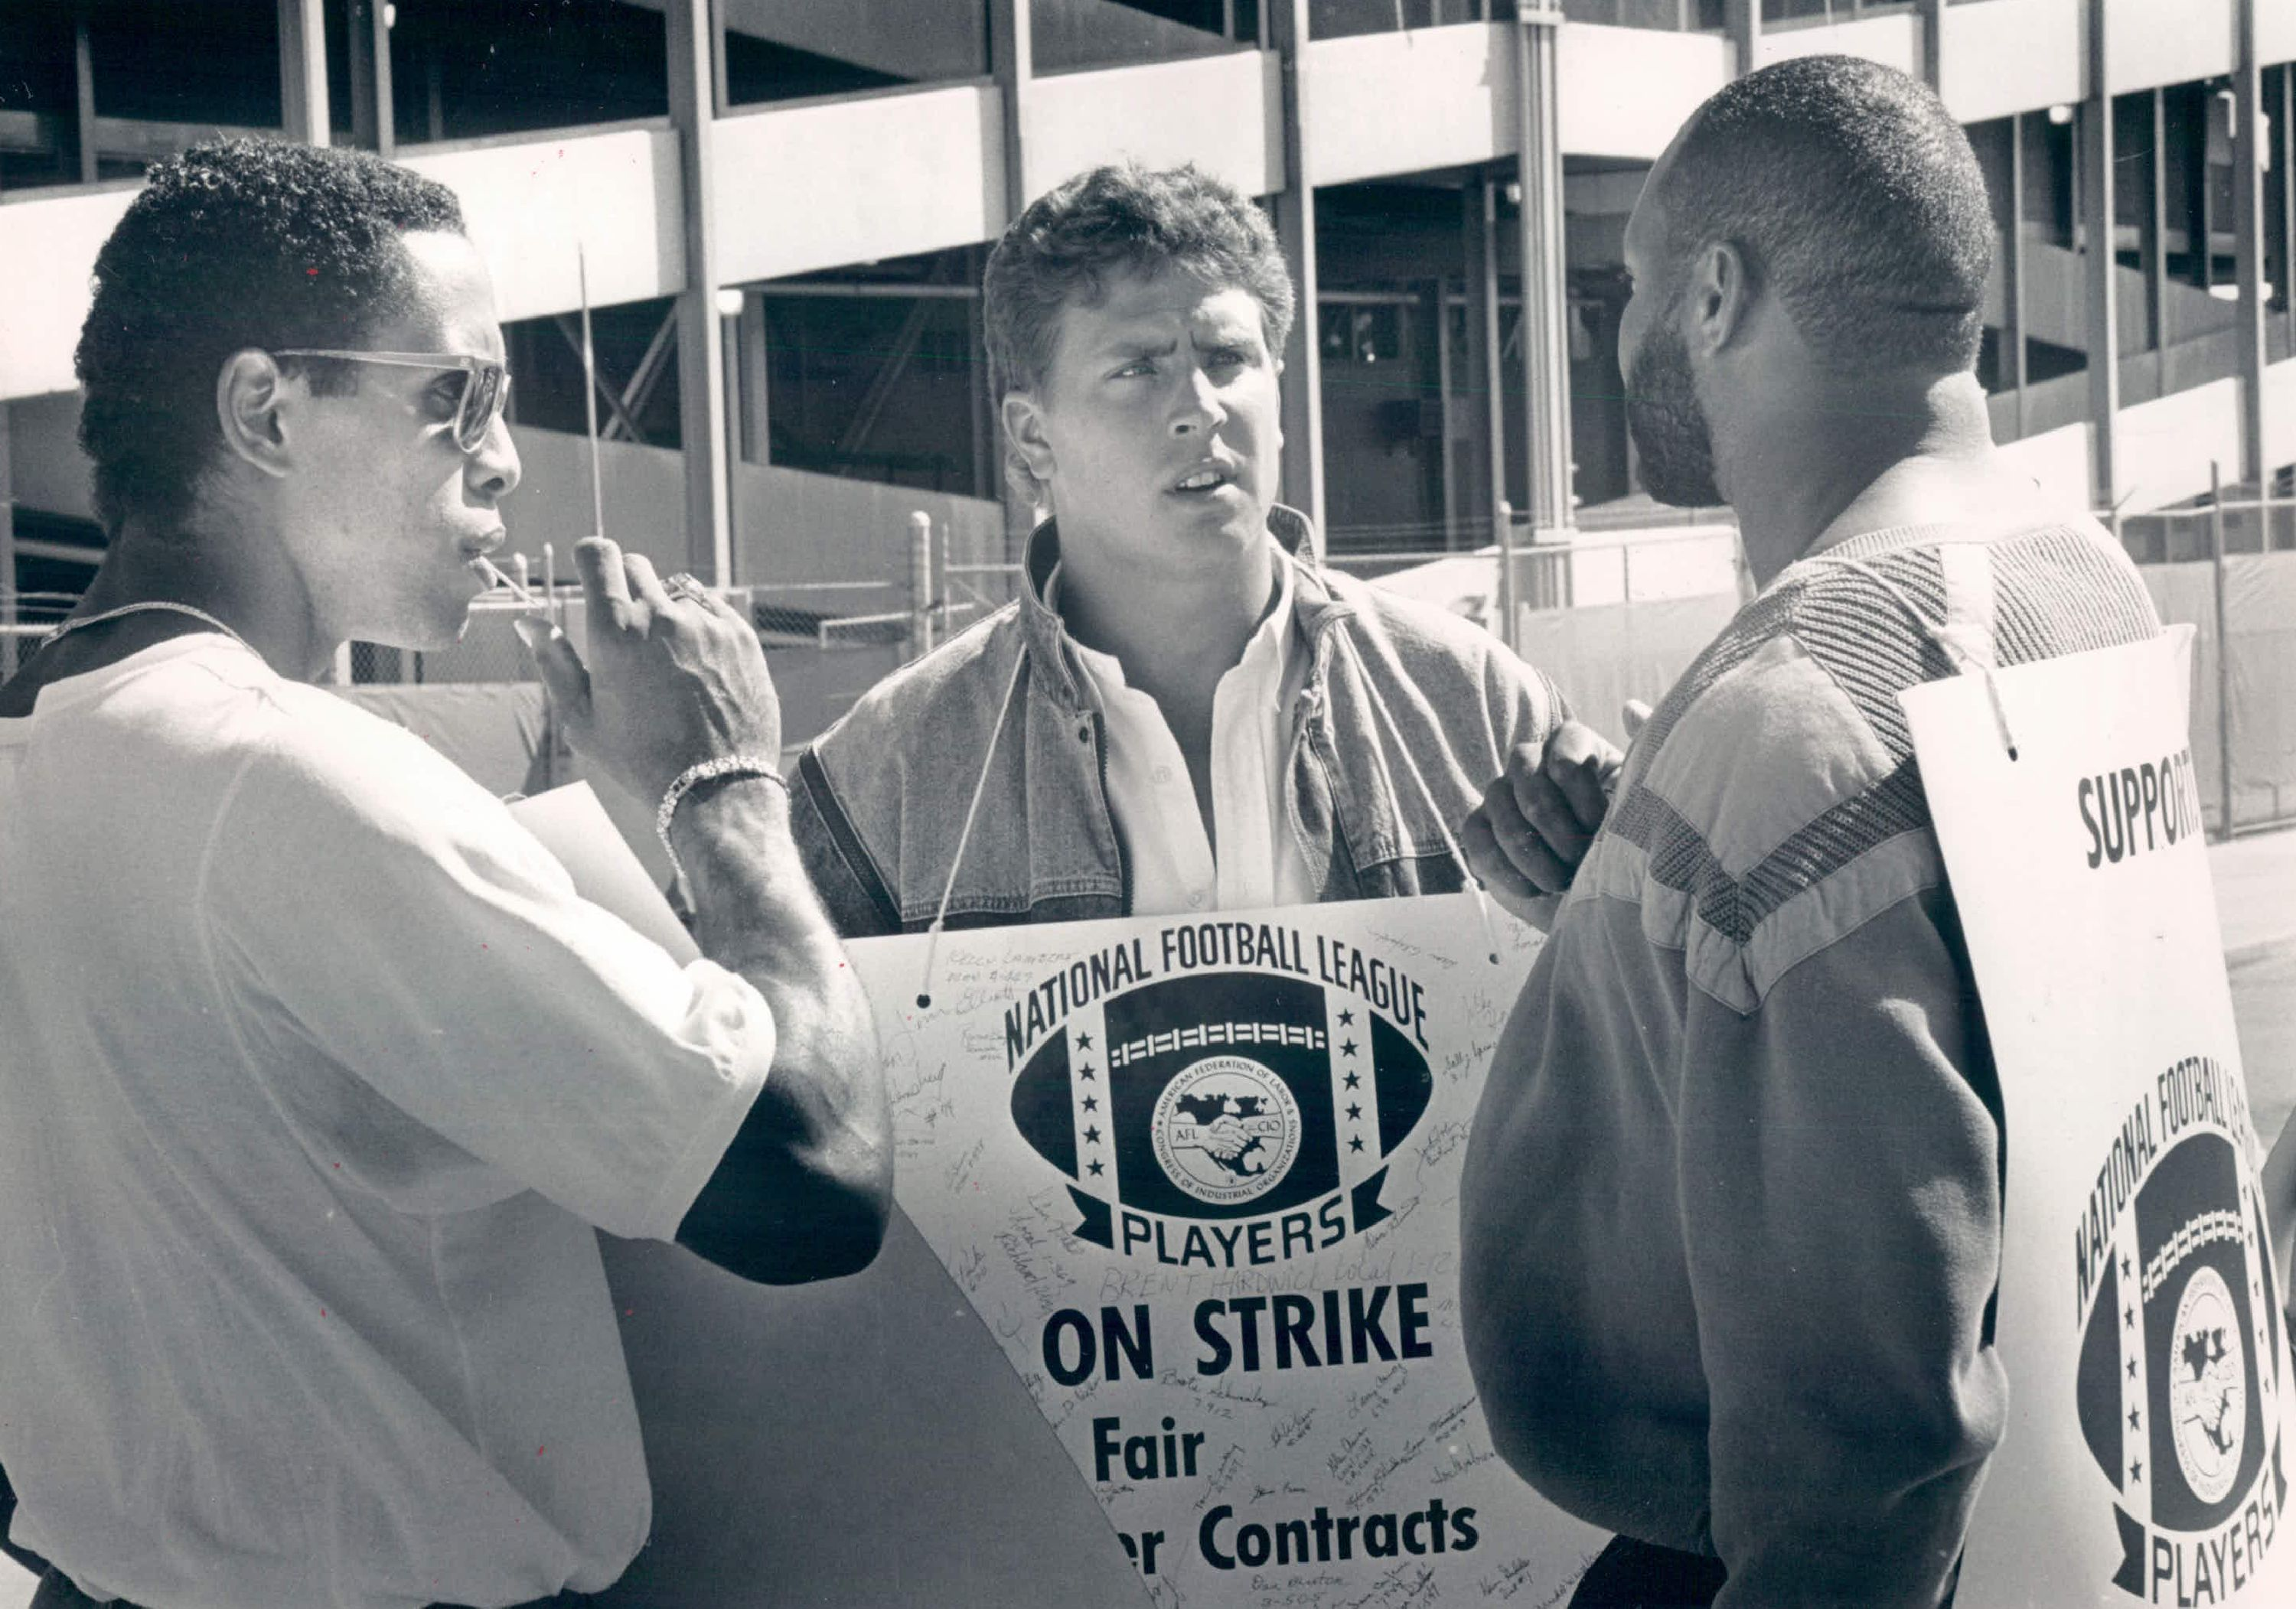 The 1987 NFL Strike at Mile Hi Stadium: Dan Merino (C) talks with Broncos players Dennis Smith (L) and Ricky Hunley of the NFLPA